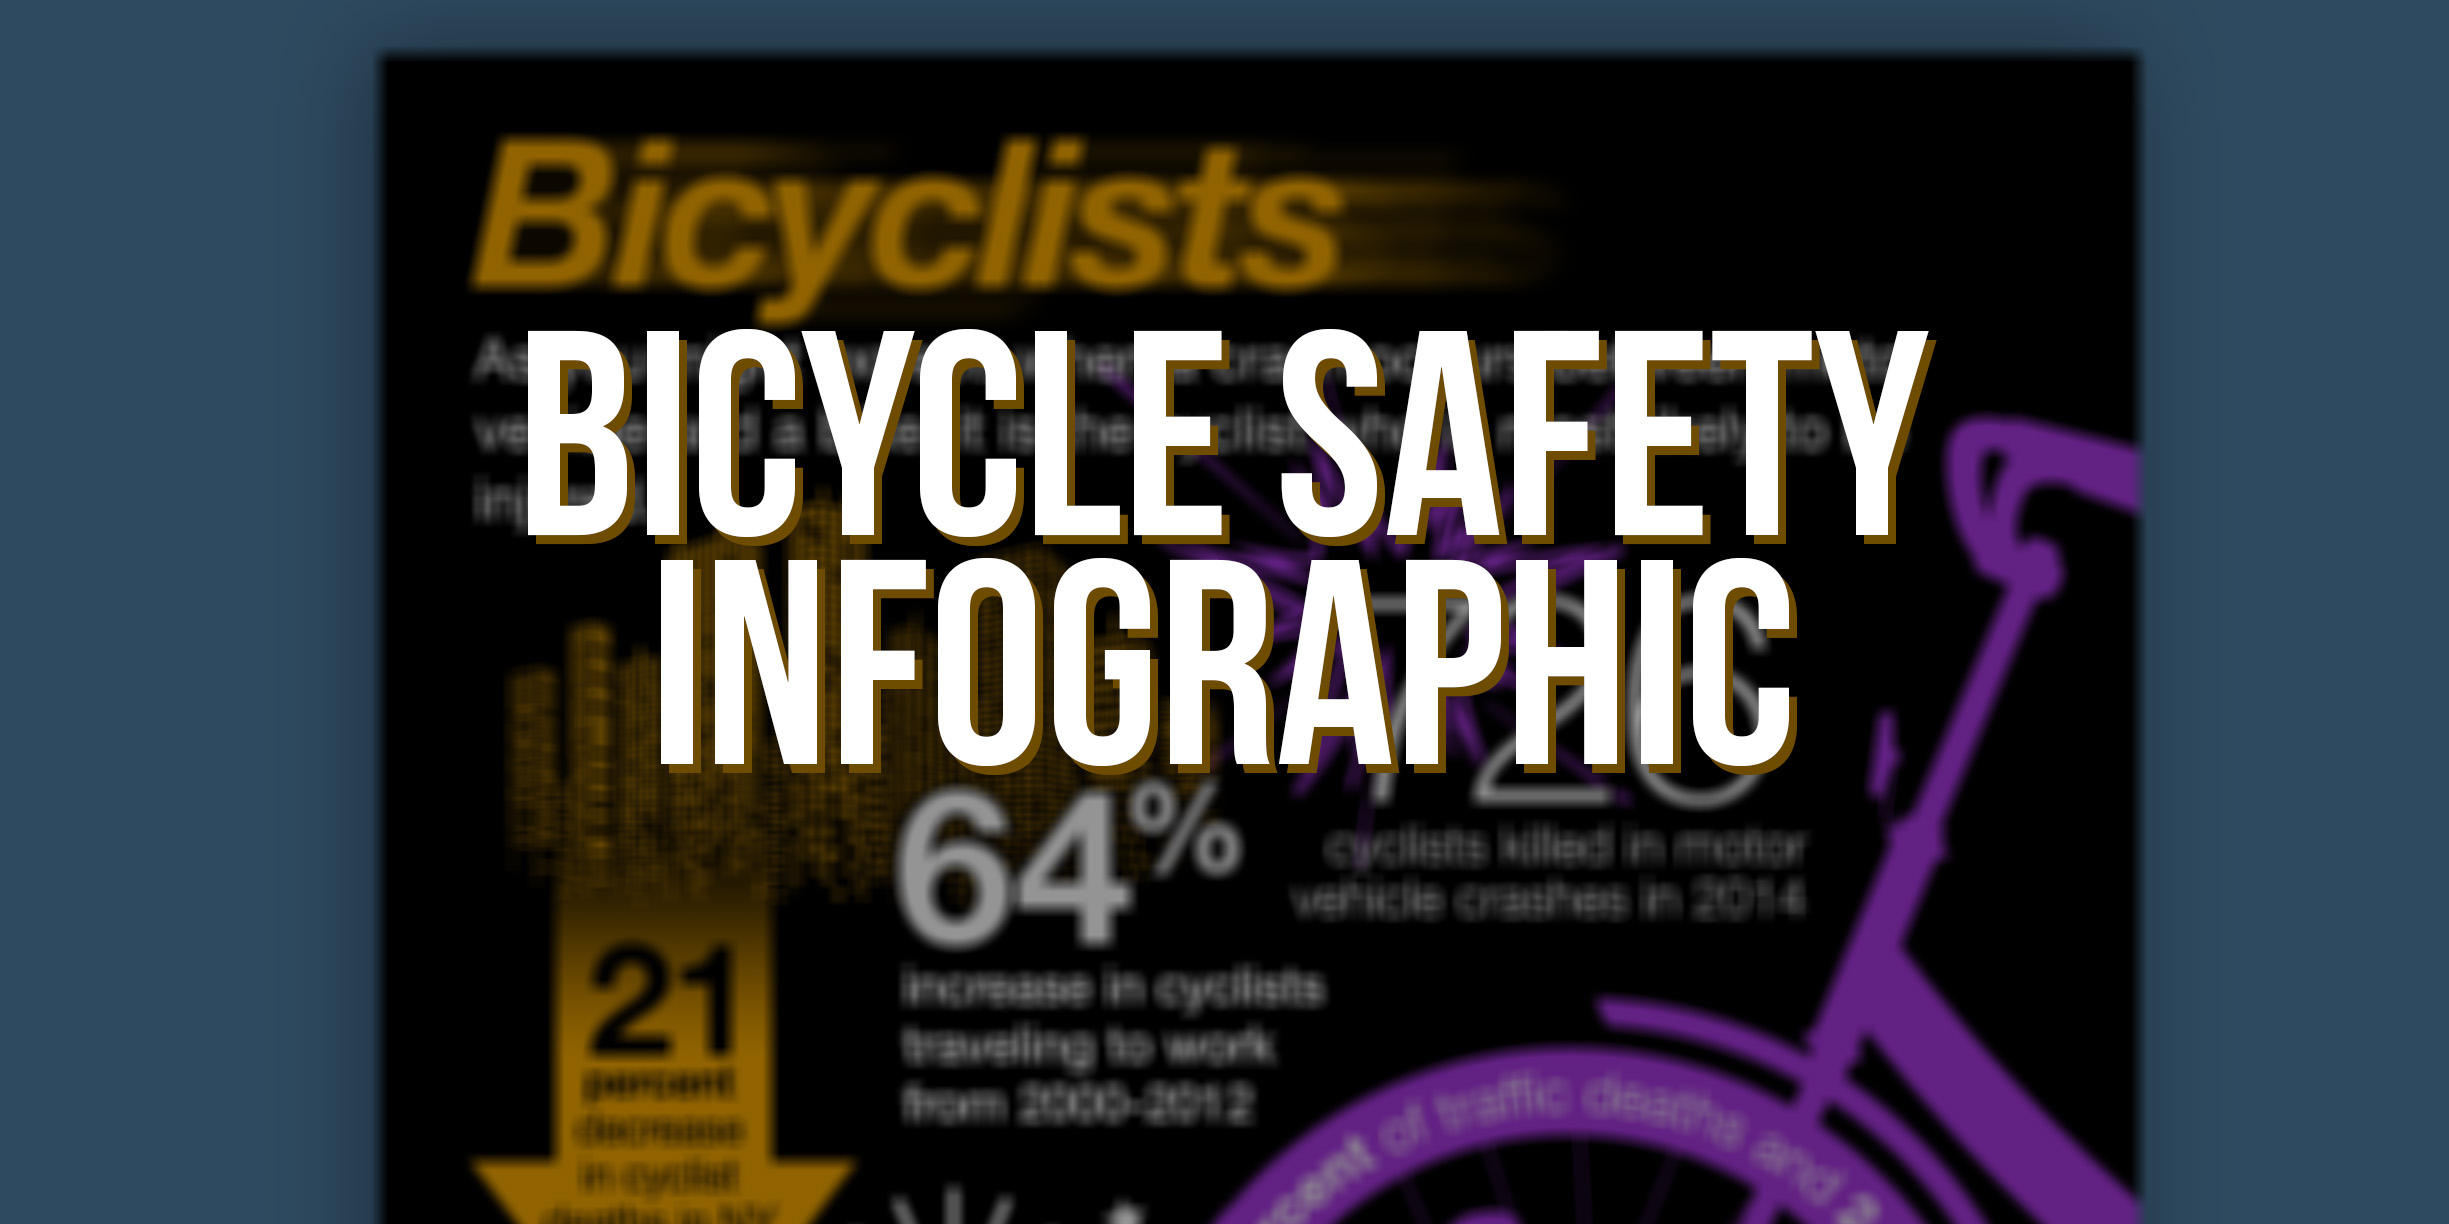 INFOGRAPHIC: Bicycle Safety